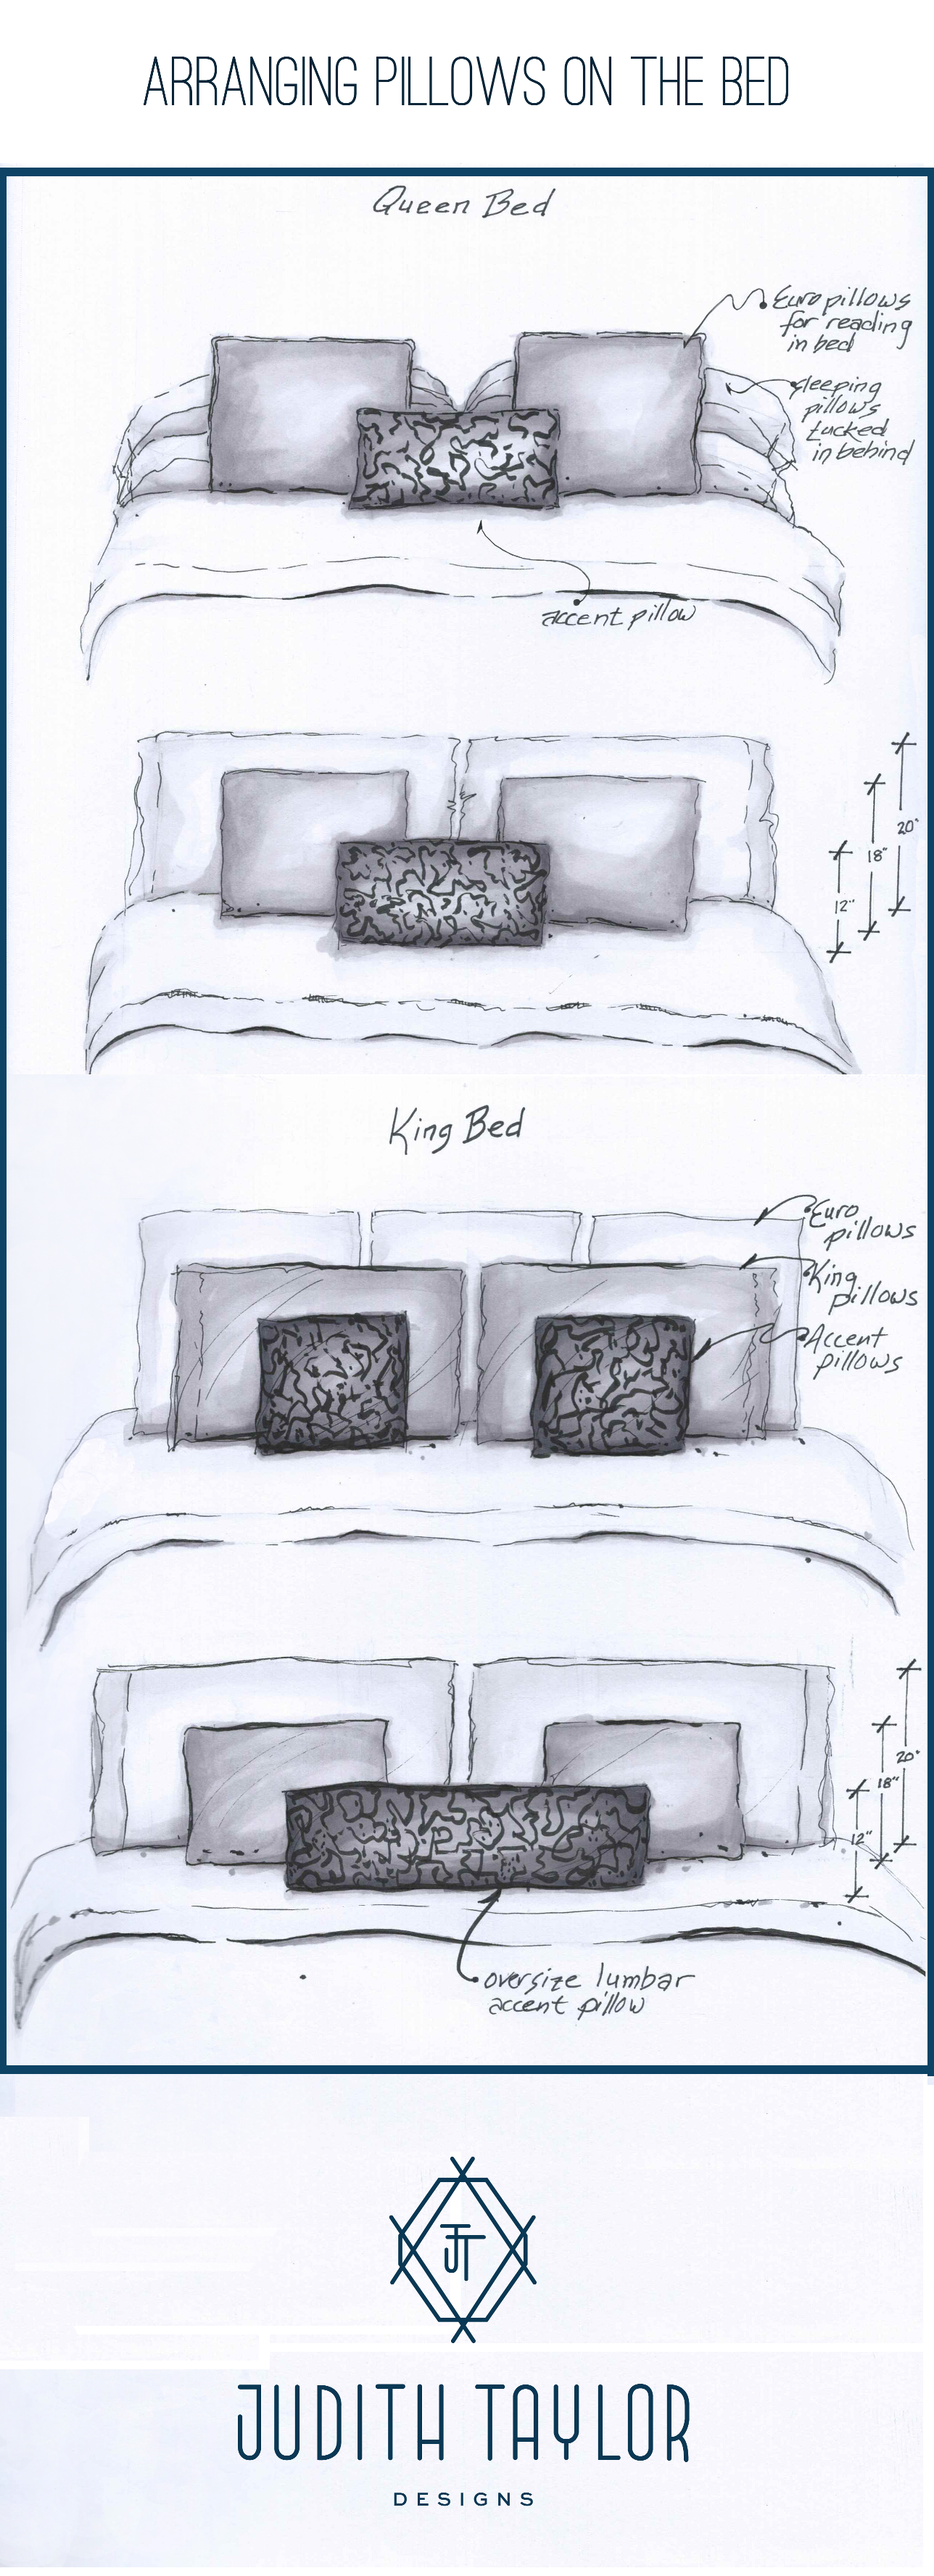 queen bed pillows Arrangement and sizing for pillows on Queen and King bed.   queen bed pillows